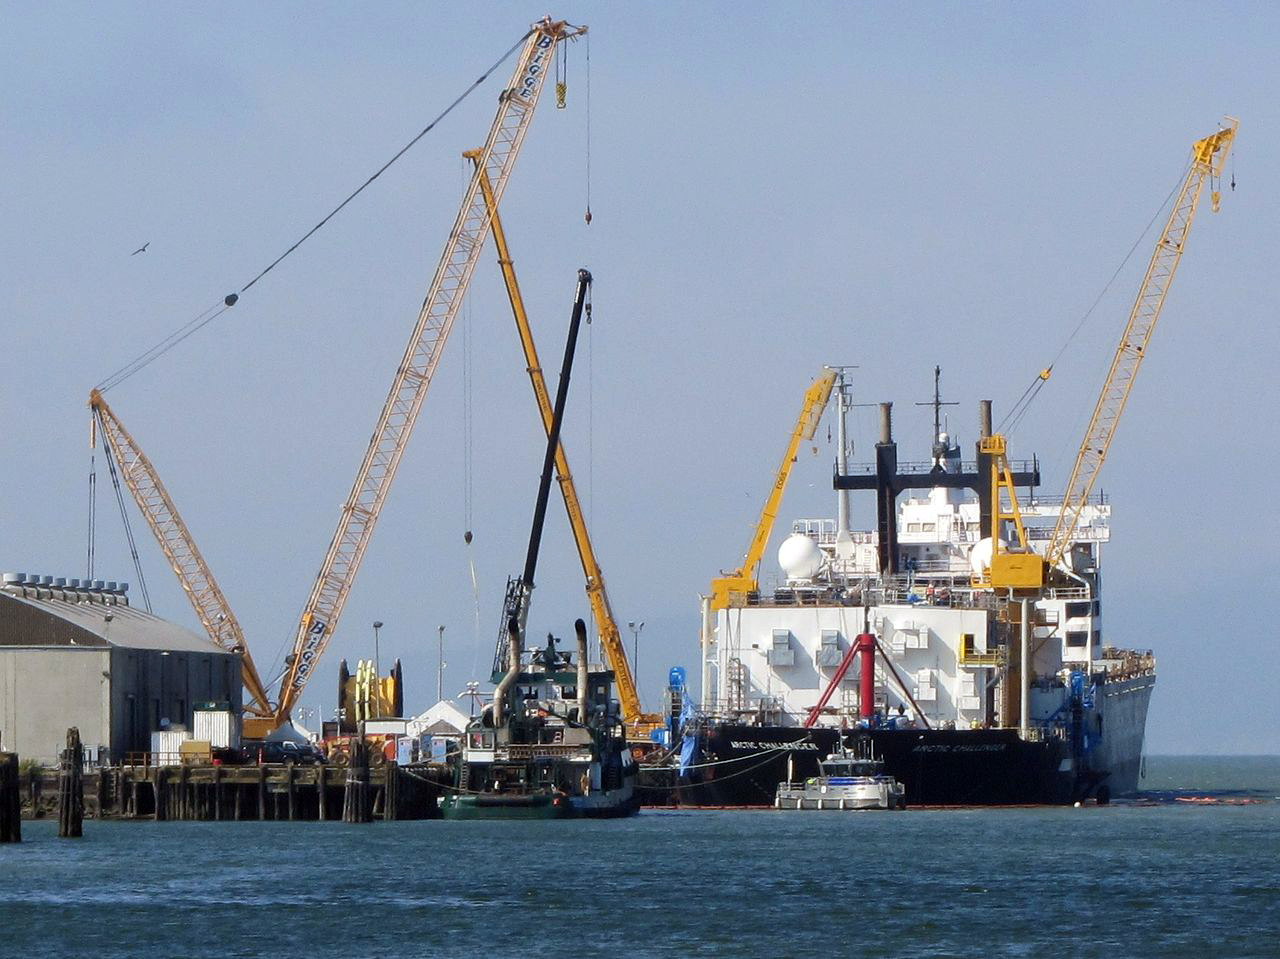 Shell Oil's Arctic Challenger oil-spill response rig is under construction at the Bellingham Shipping Terminal.